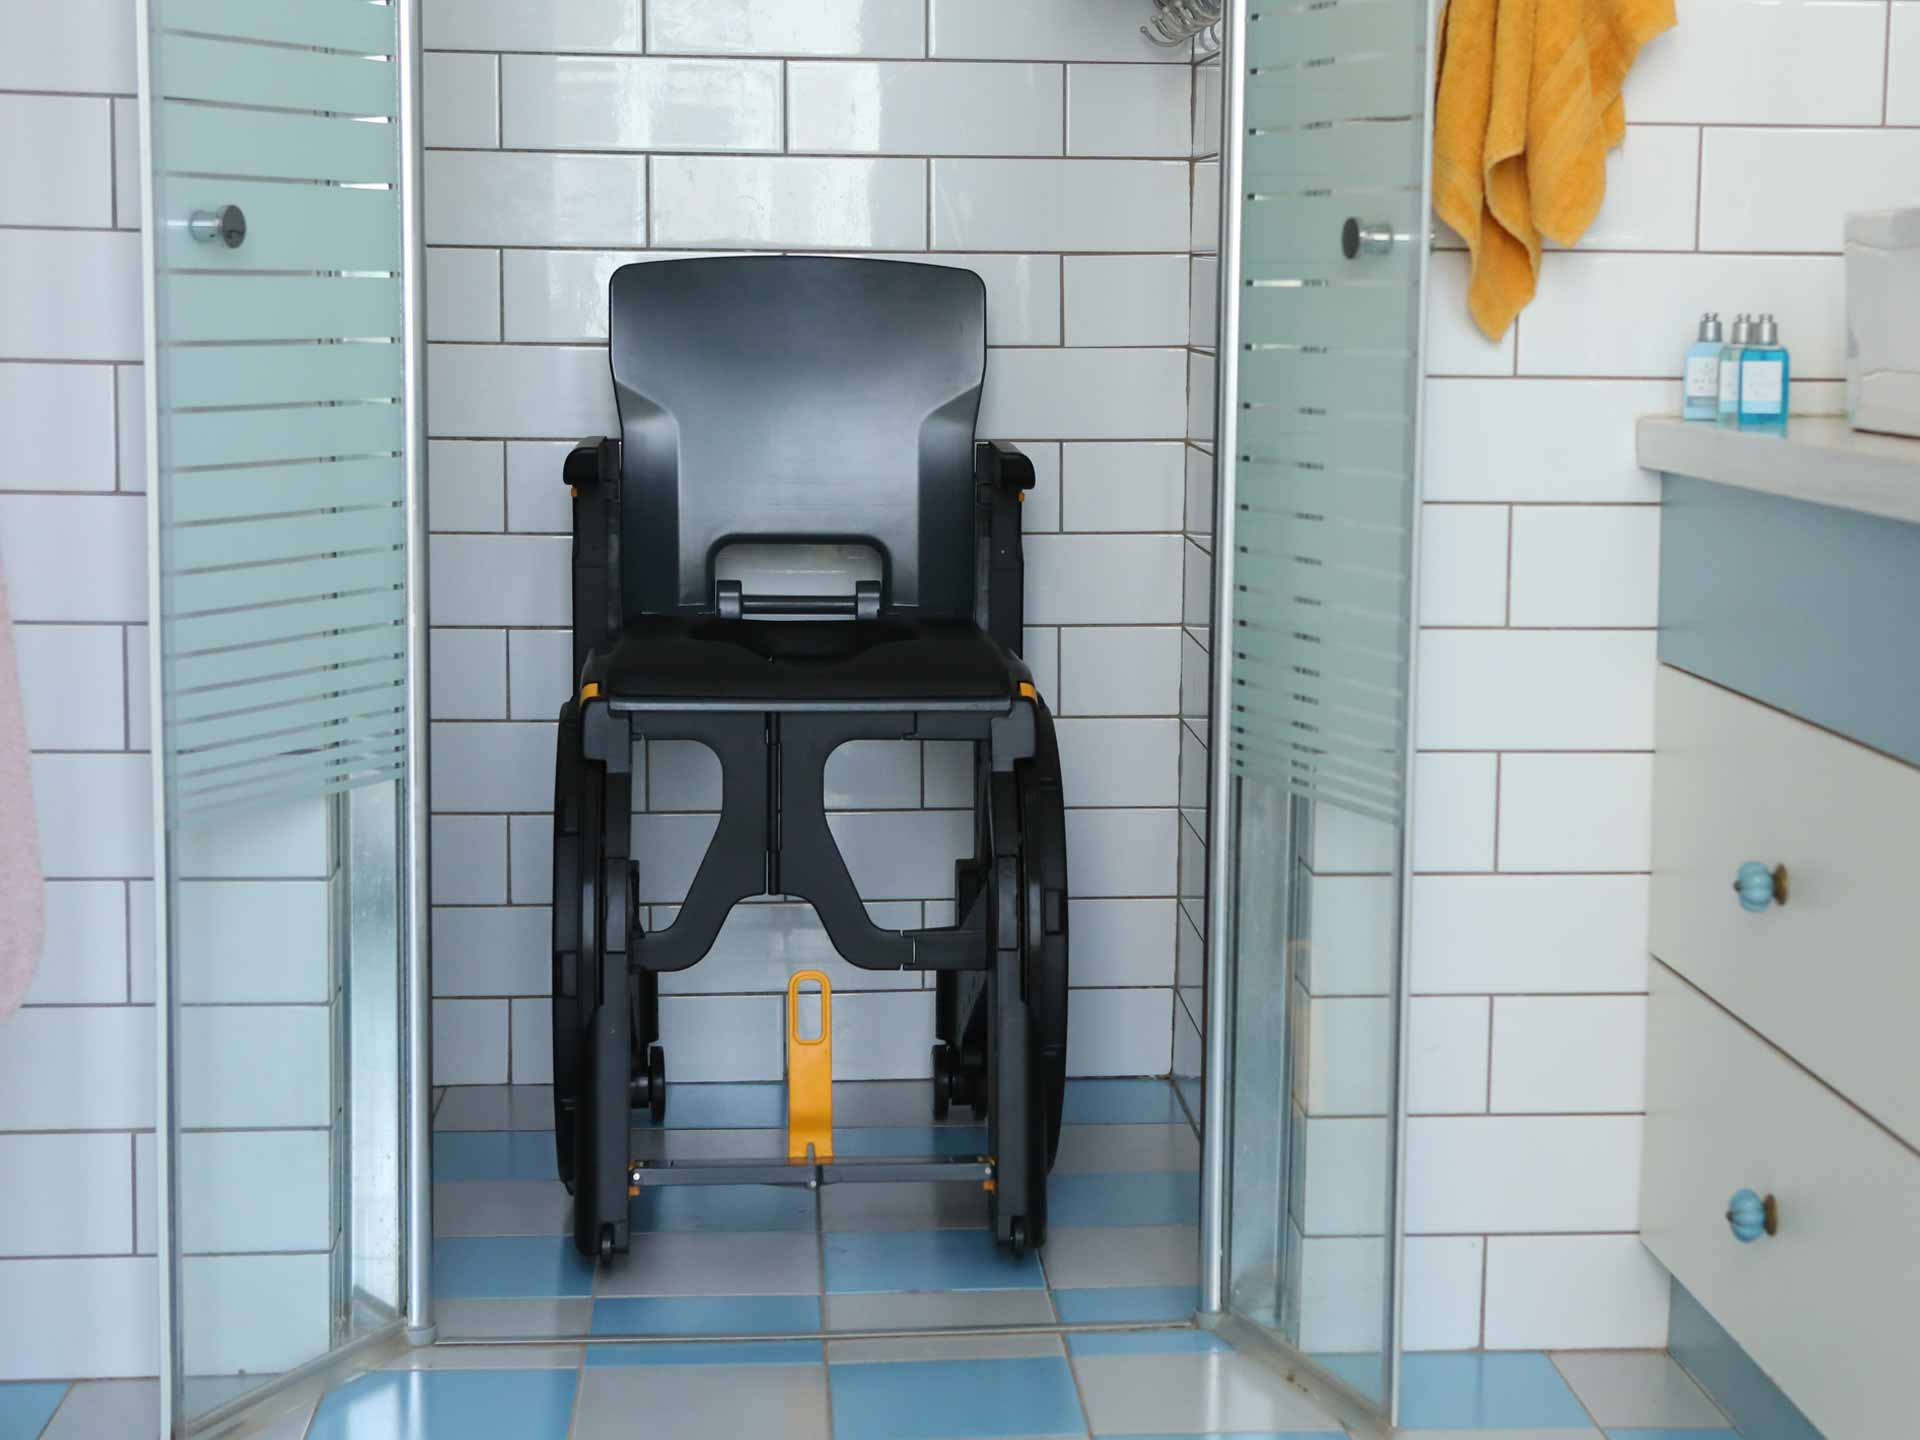 Hire equipment for water activities, showers, baths for the disabled